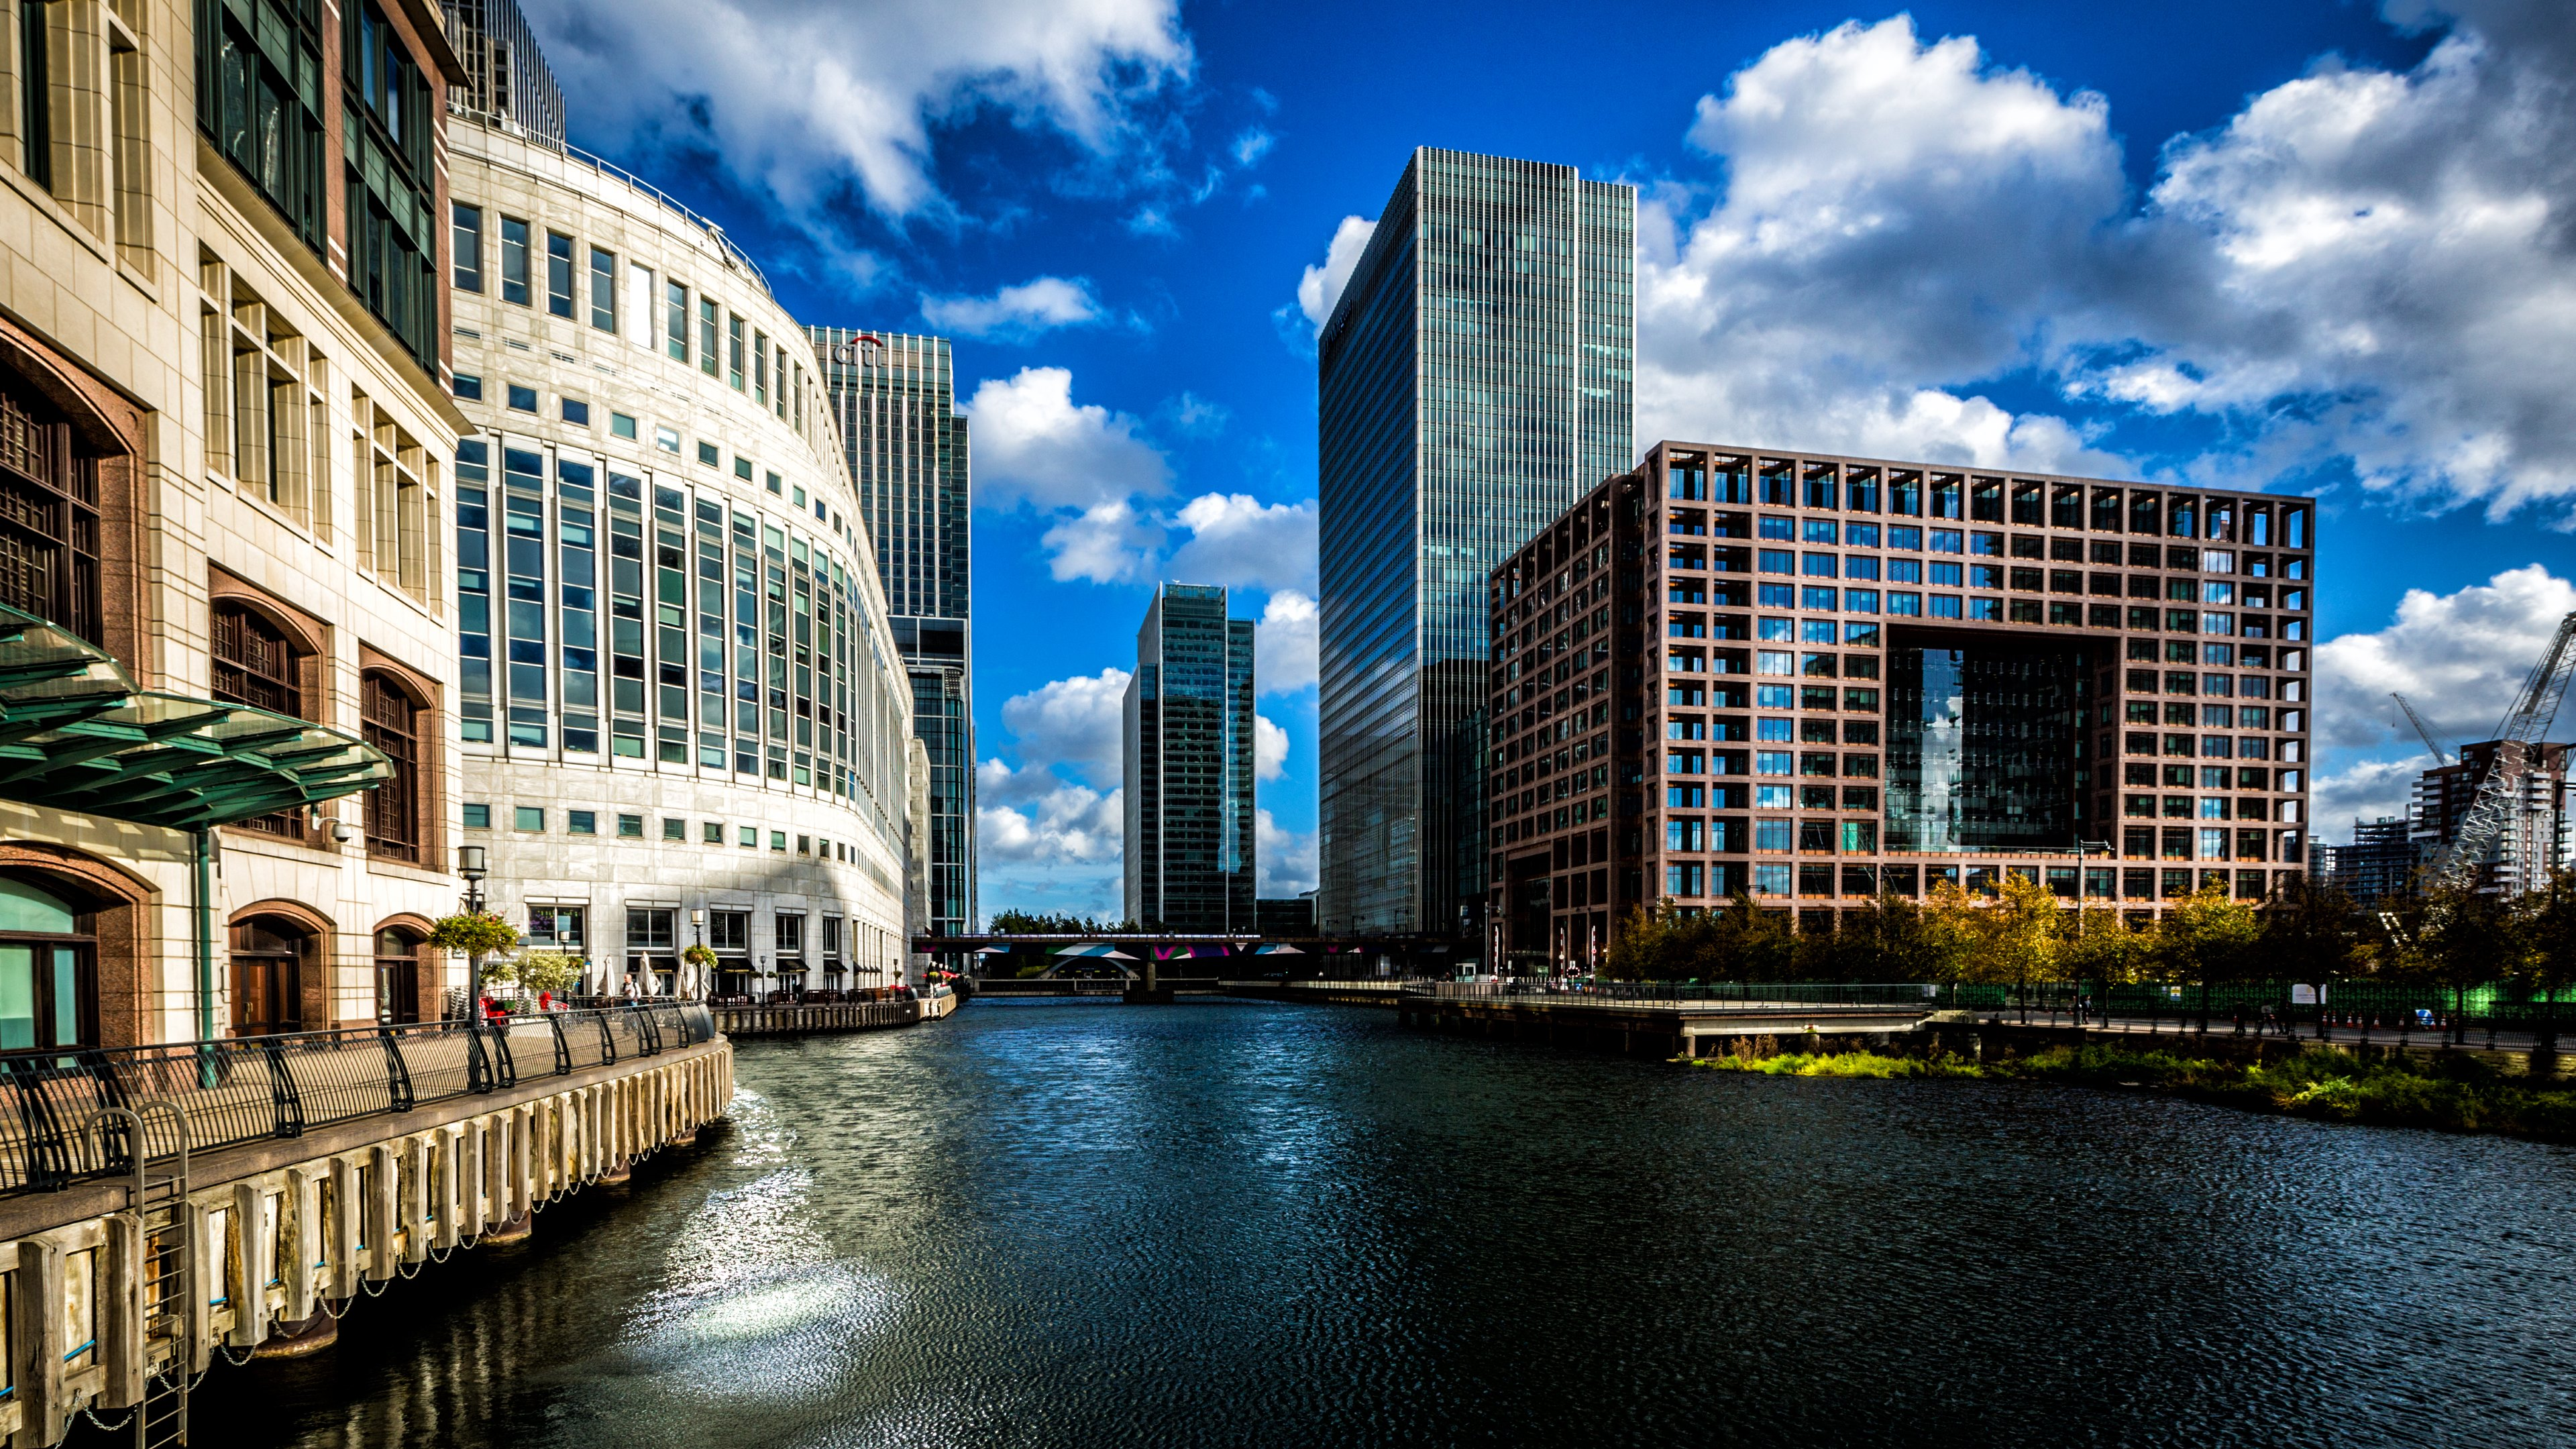 Canary wharf london architecture travel hd wallpapers for Architecture 4k wallpaper